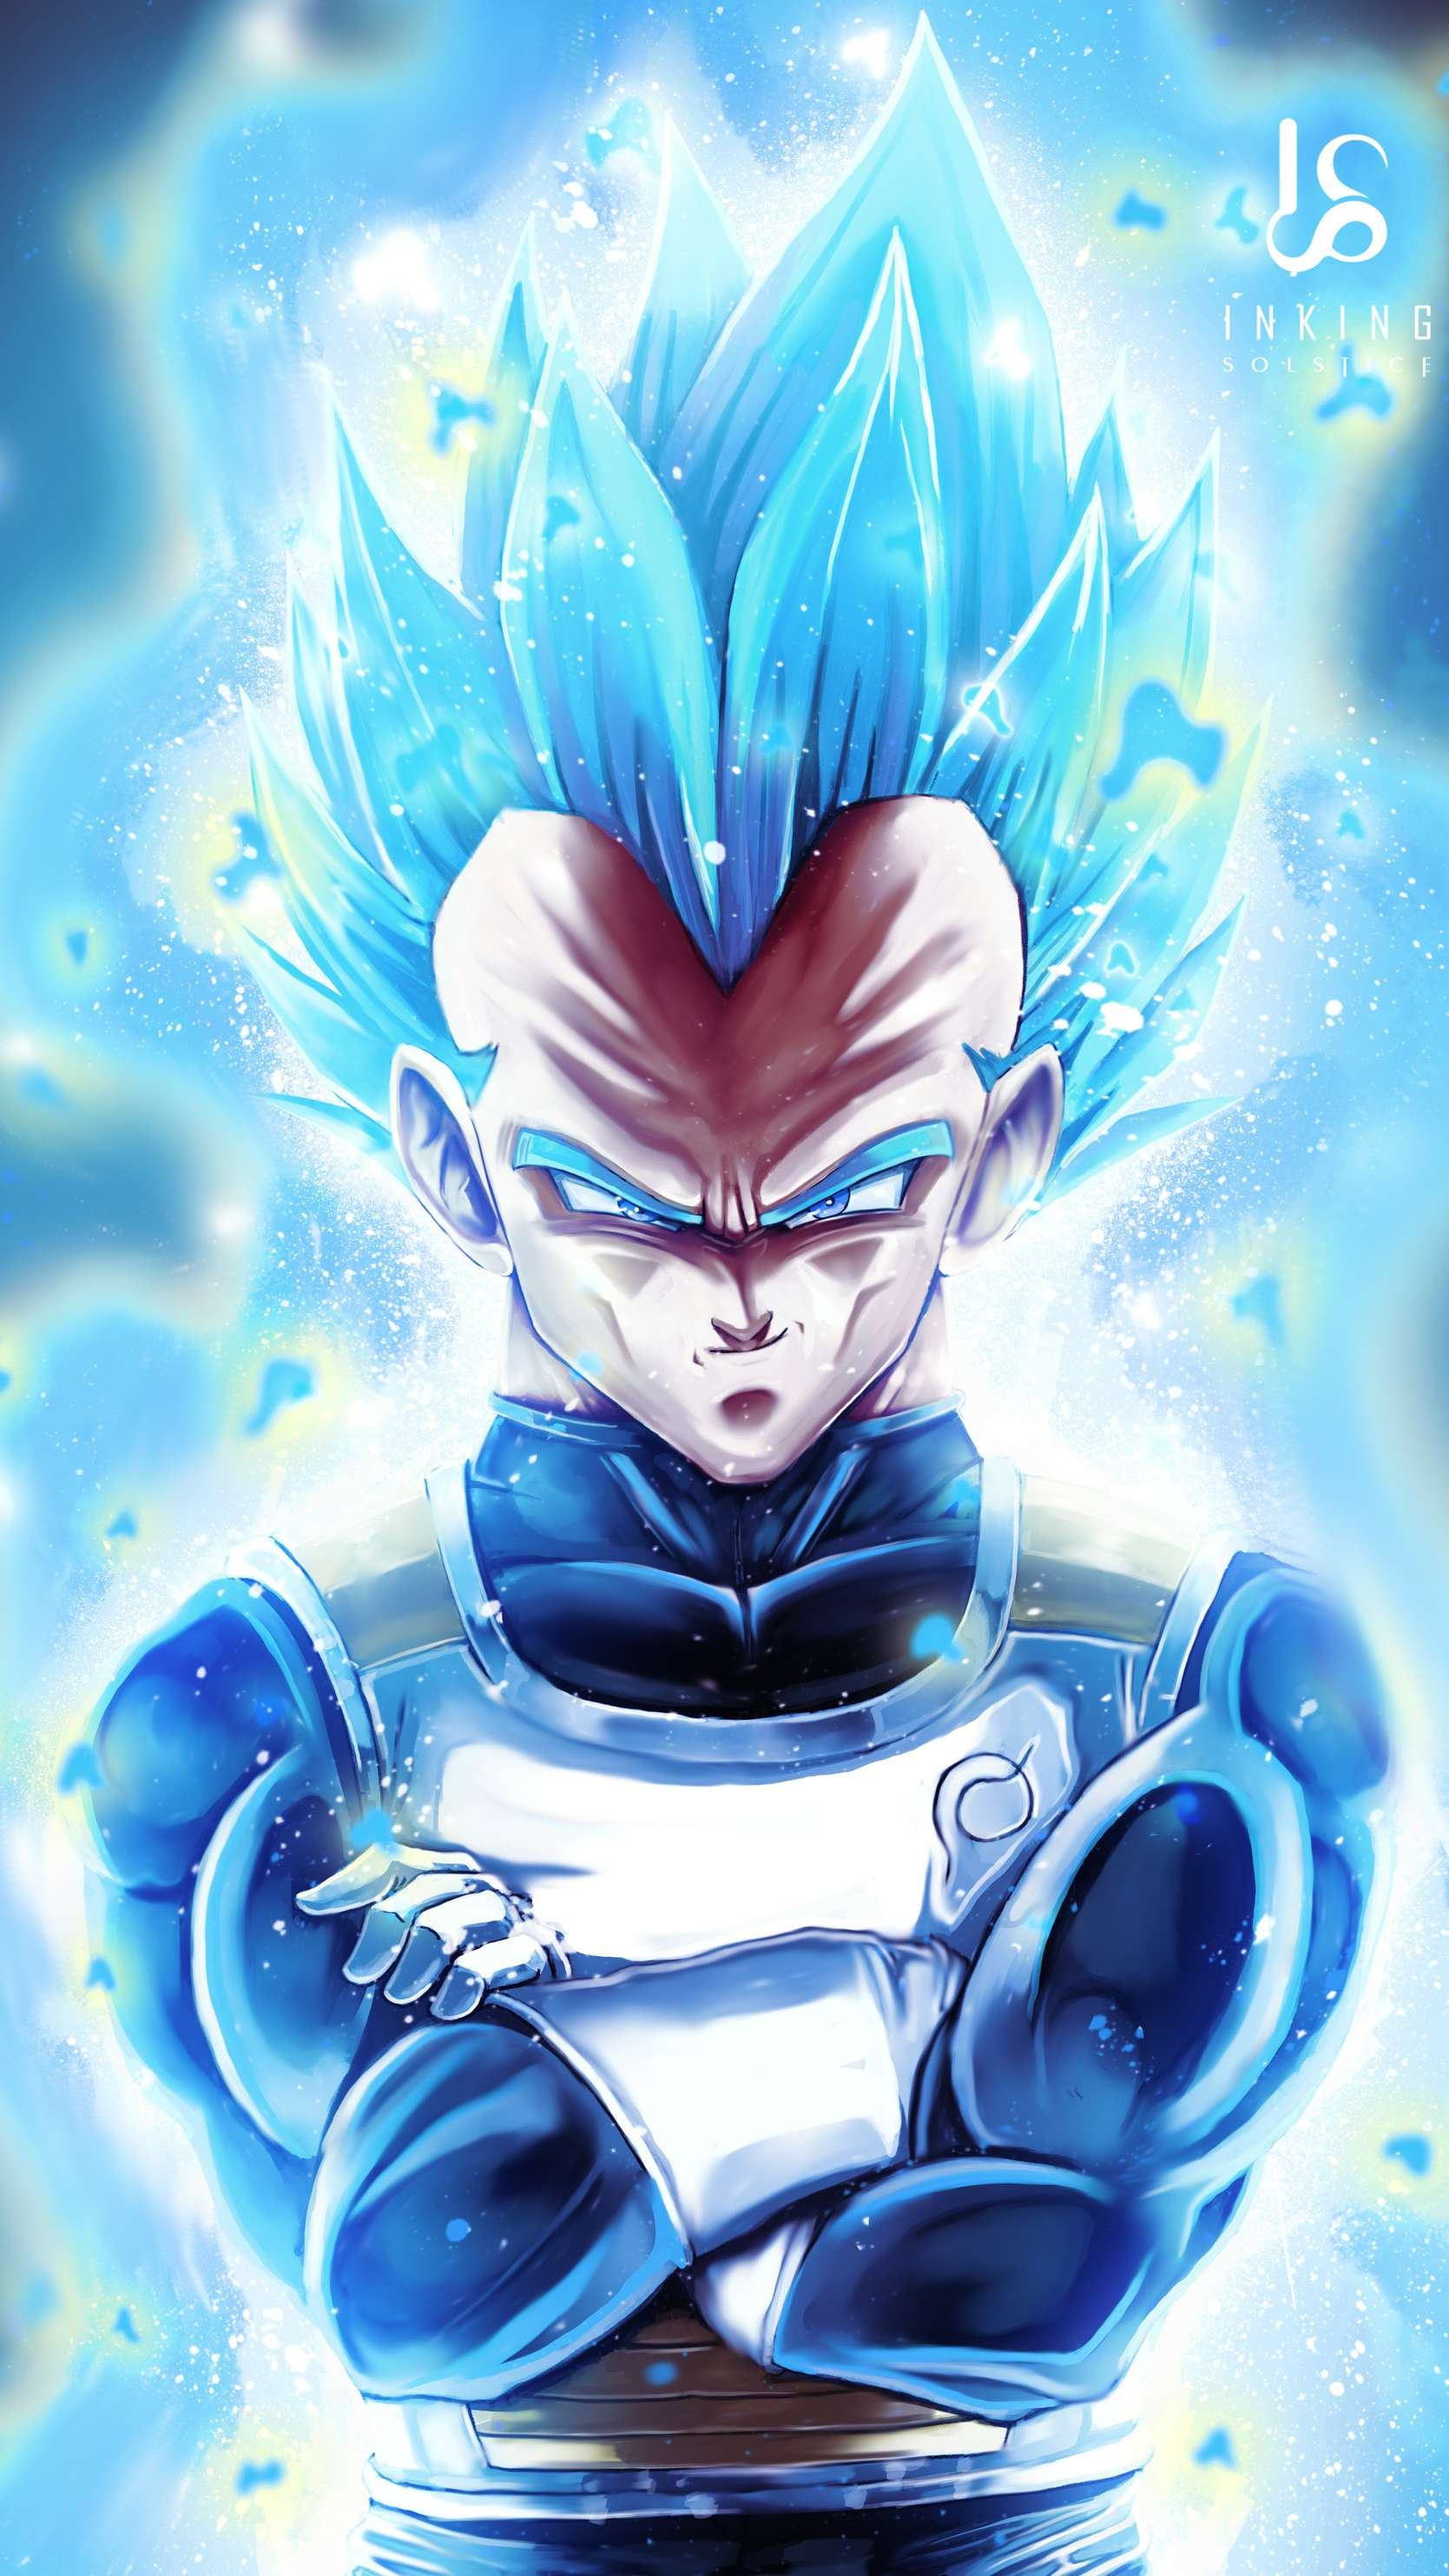 Dragon Ball Z Wallpaper Iphone 5c 50091   HD Wallpaper 1669x2967